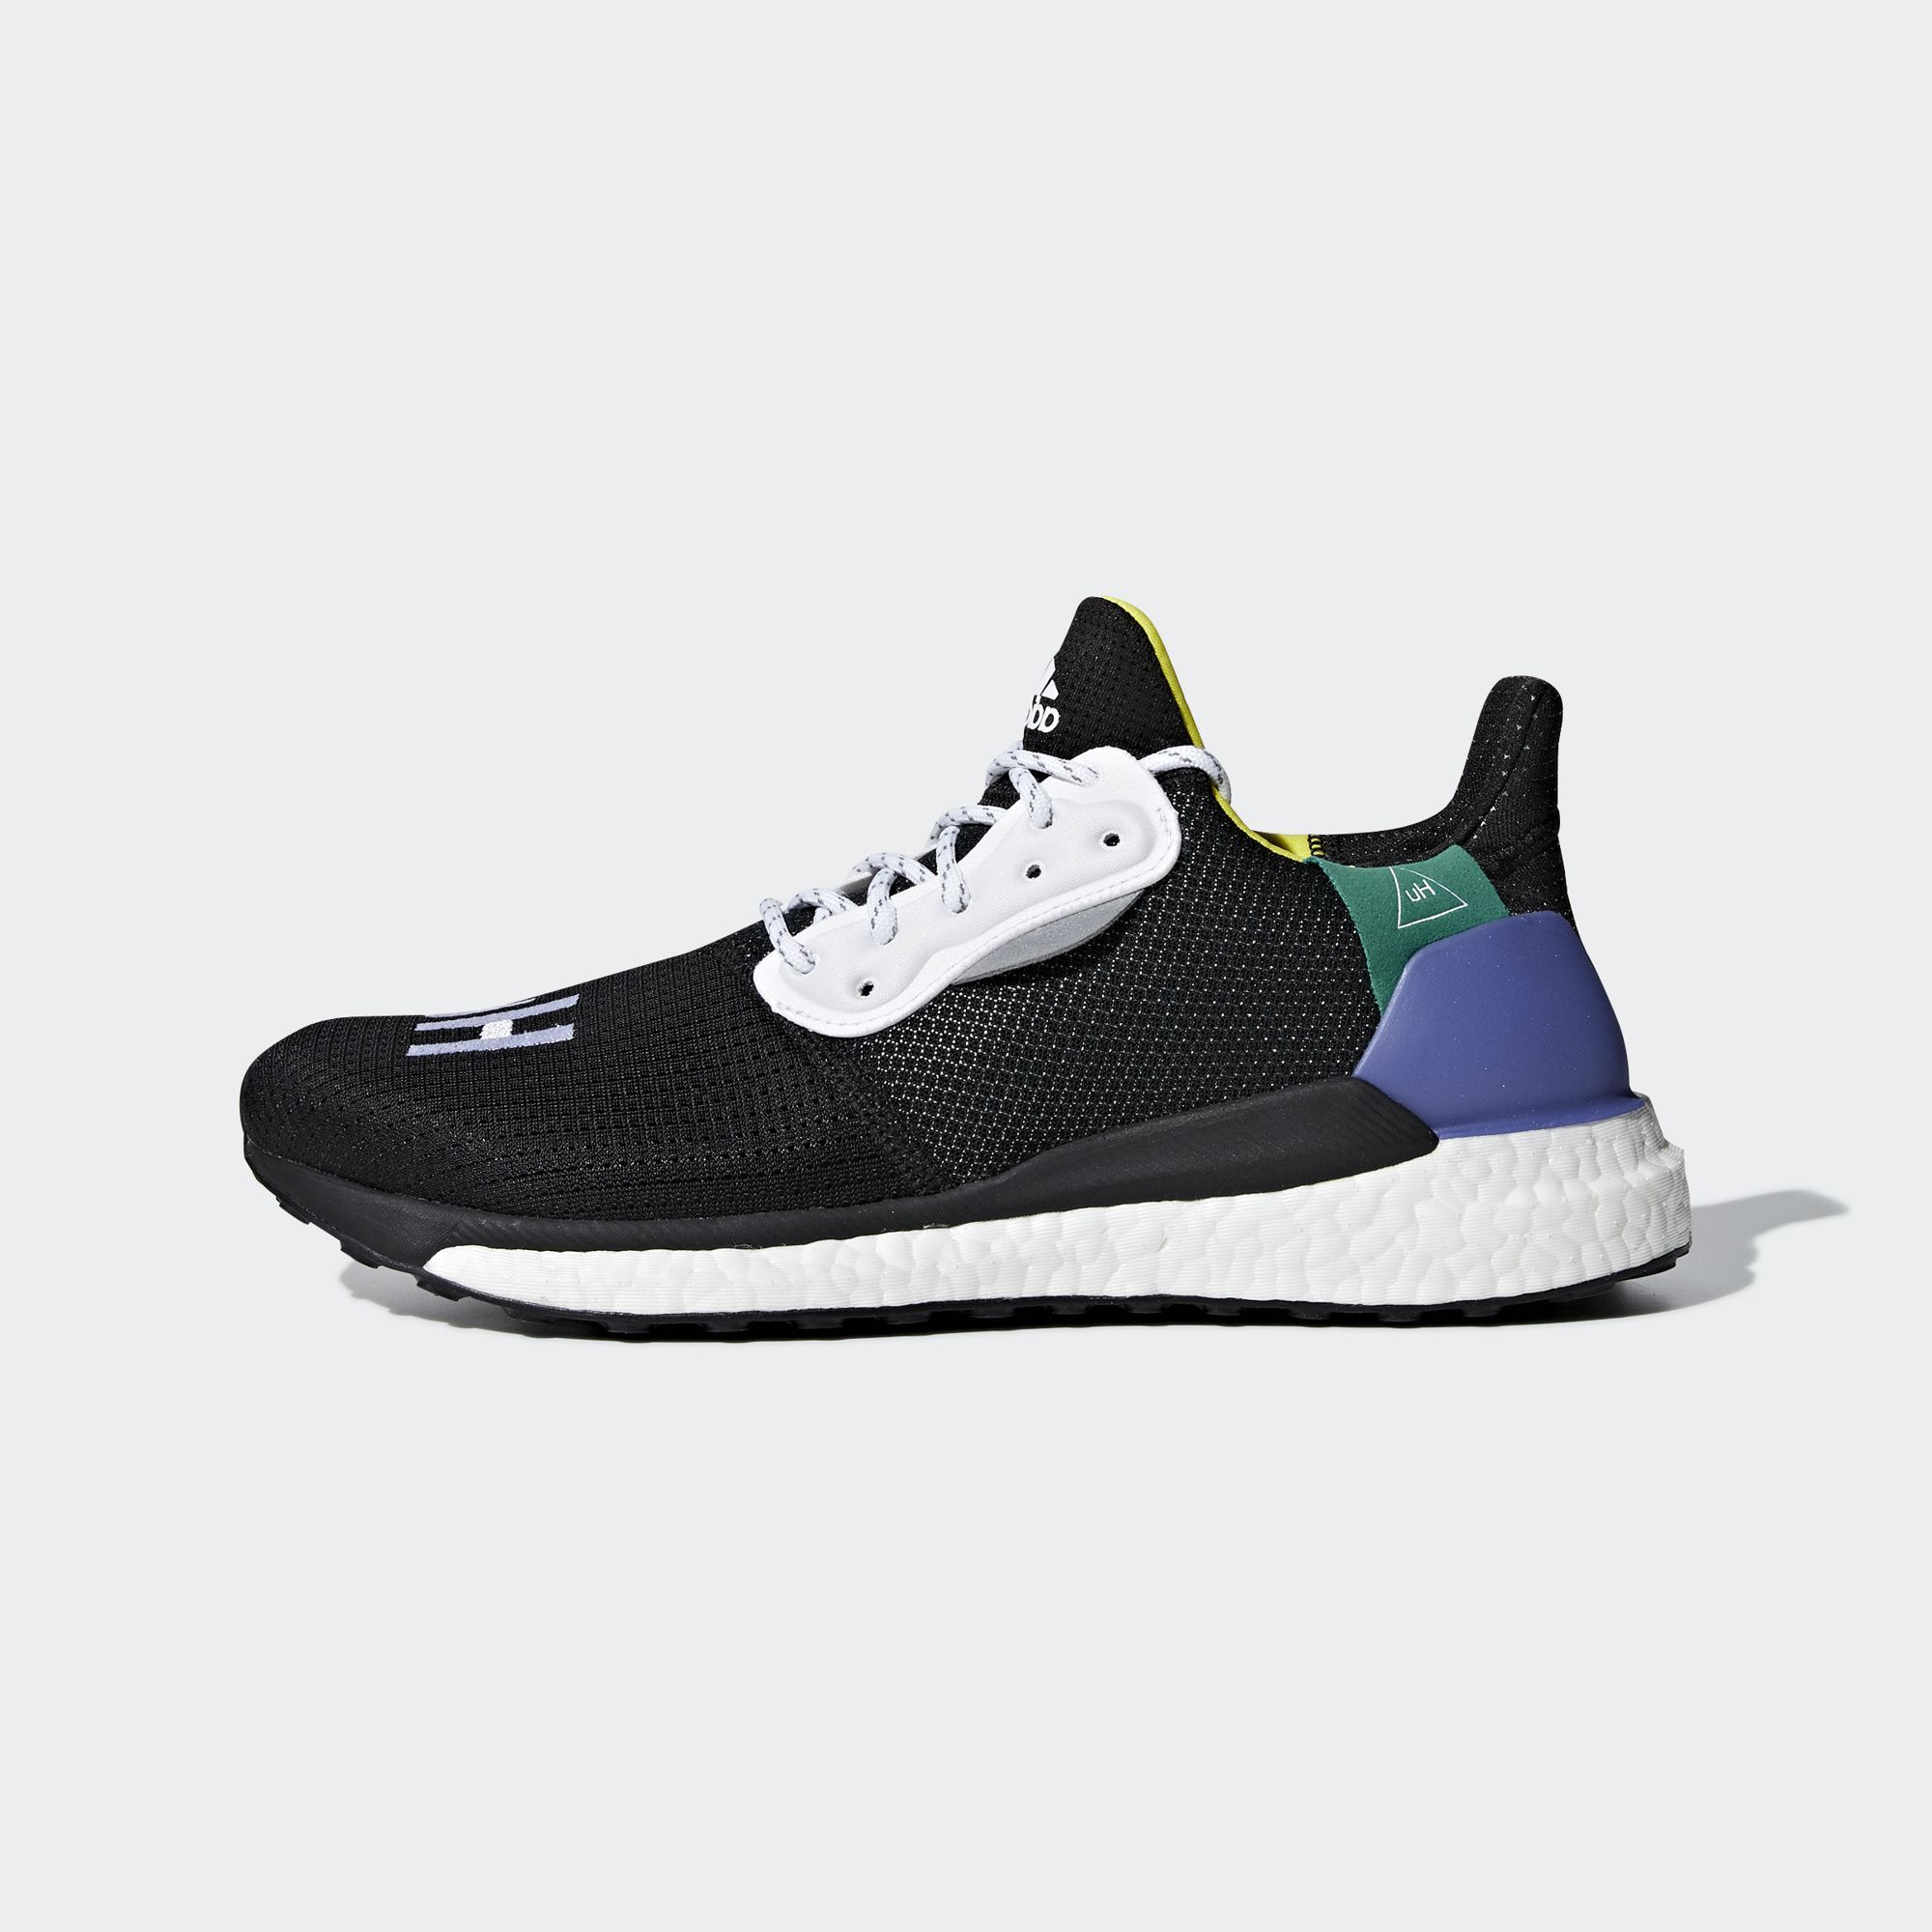 06-adidas-pharrell-williams-hu-solar-glide-00-black-bb8041